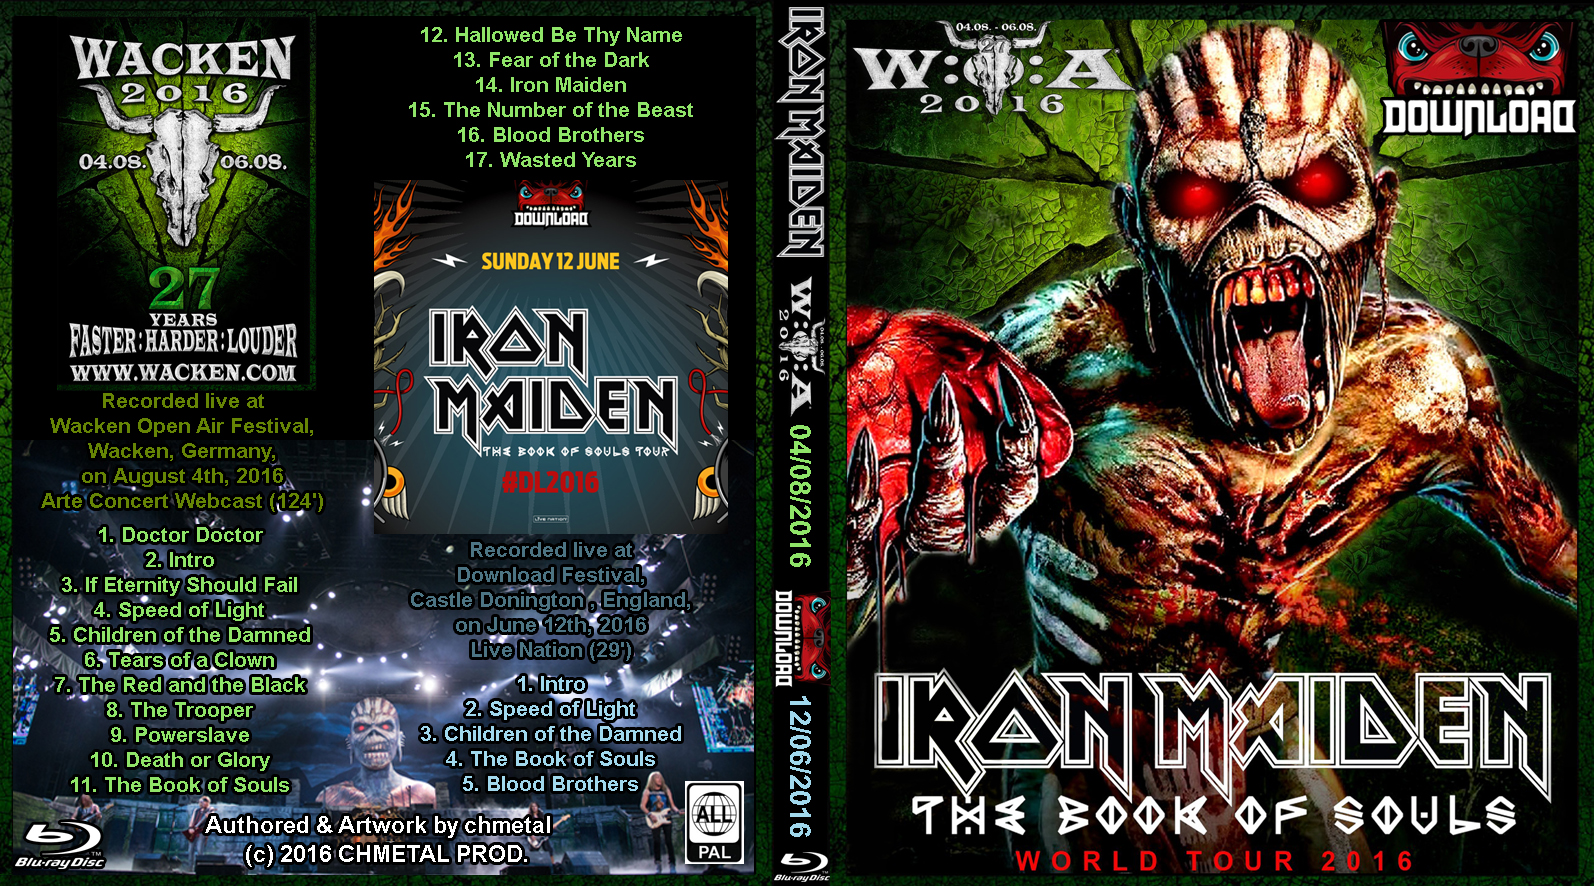 iron maiden book of souls live download